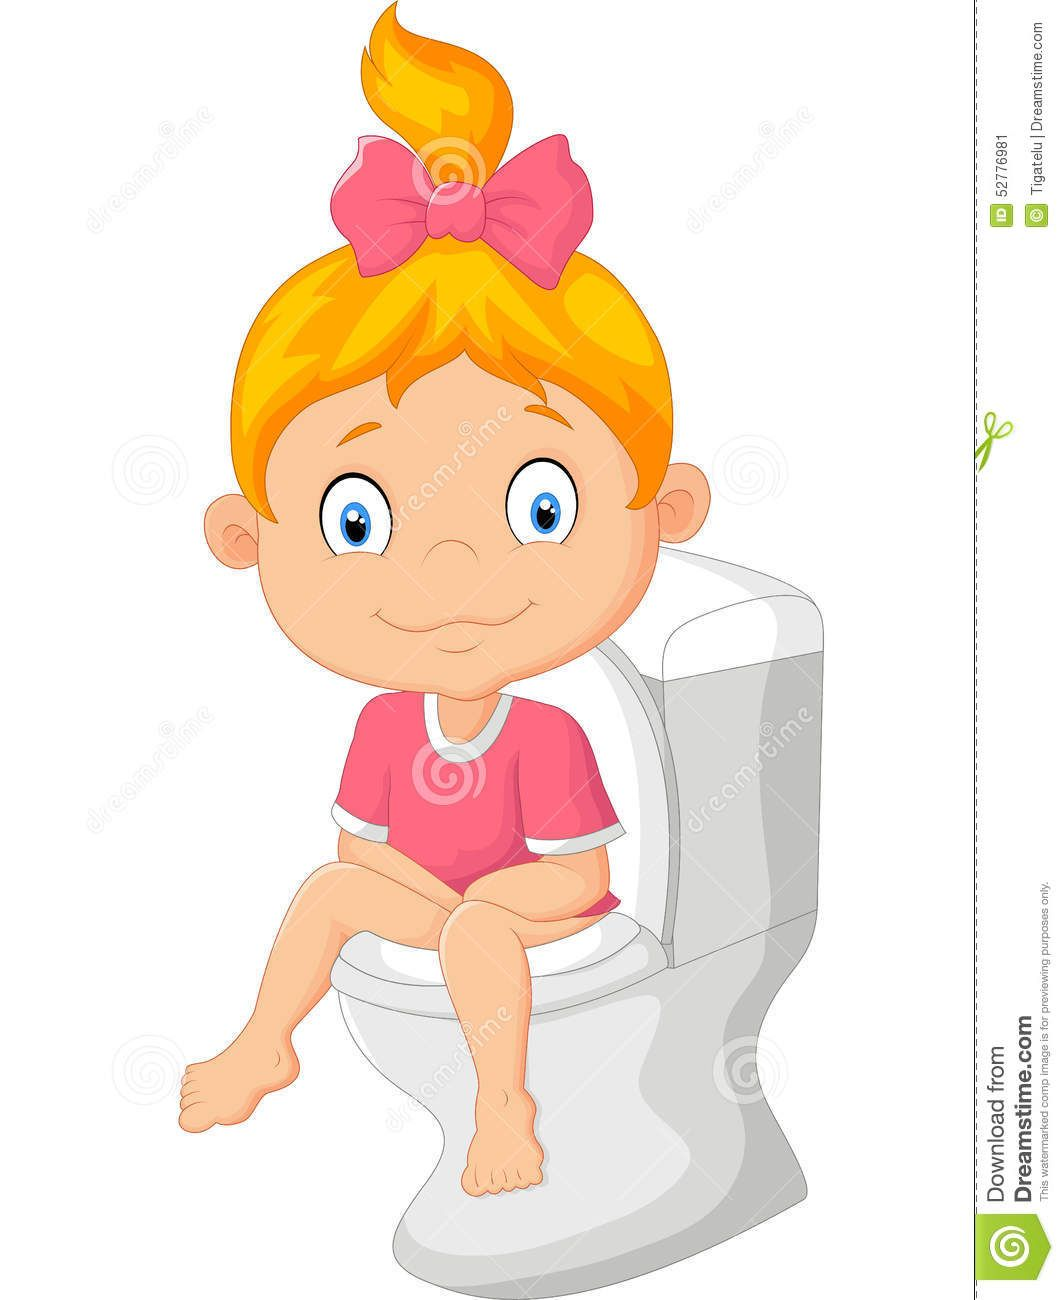 Image Result For Potty Girl Cartoon